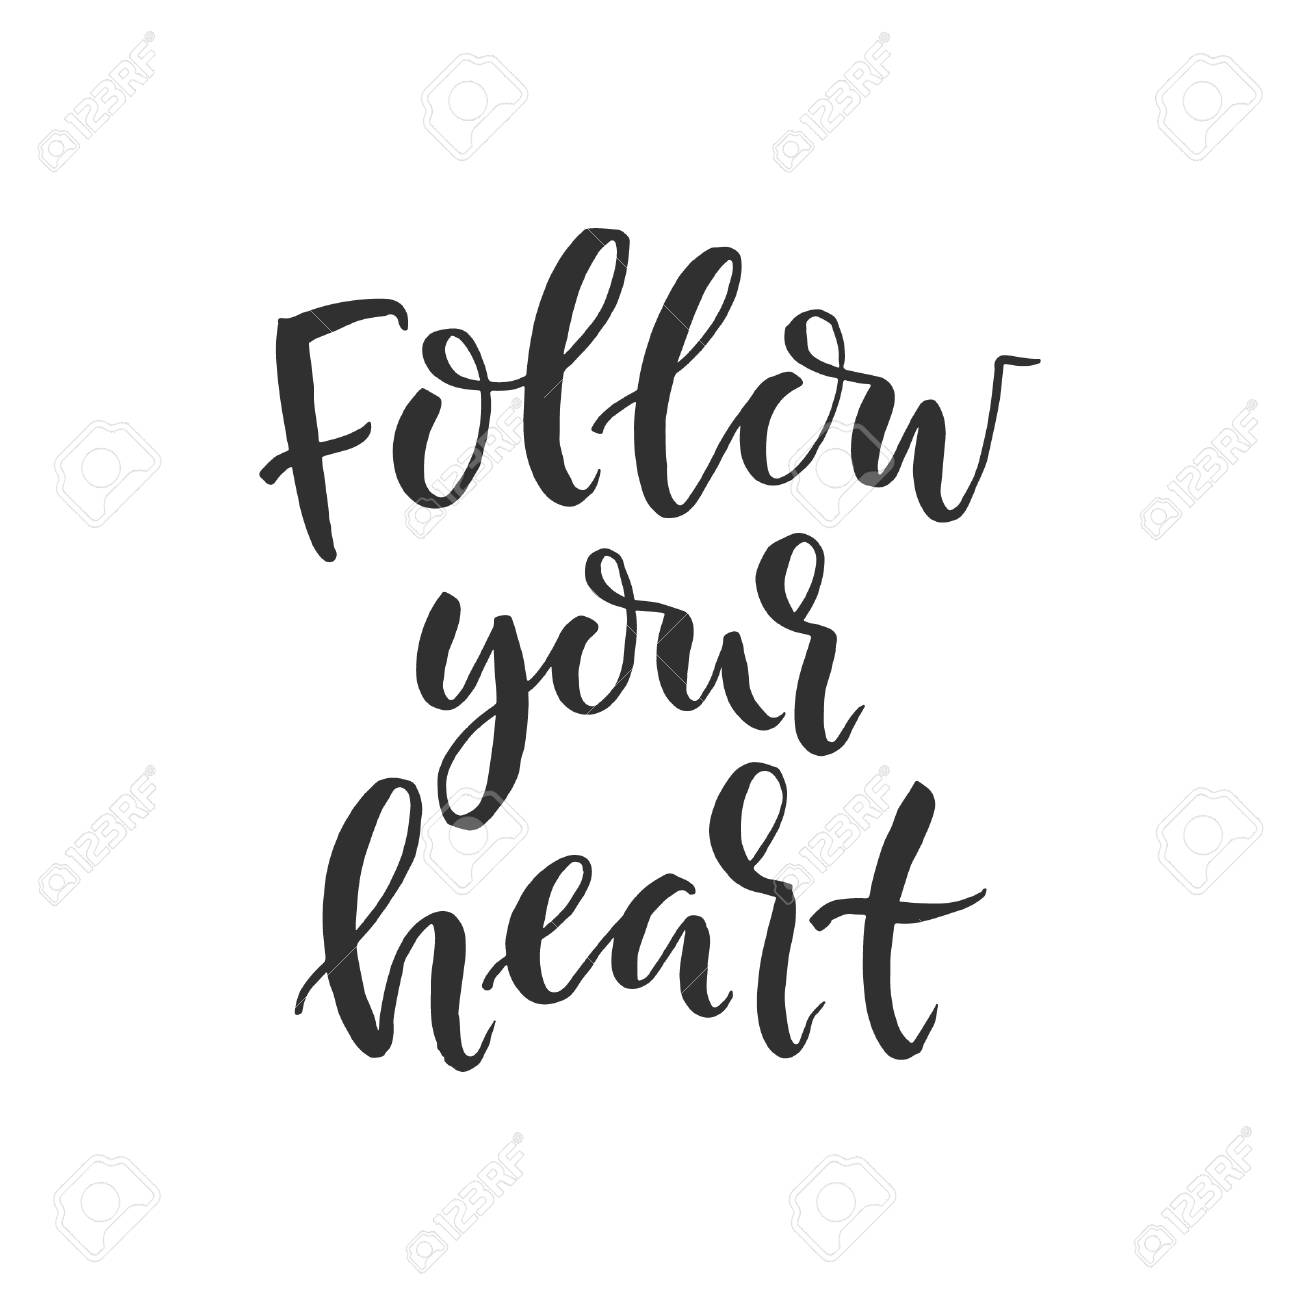 Follow Your Heart Brush Pen Lettering Follow Your Heart